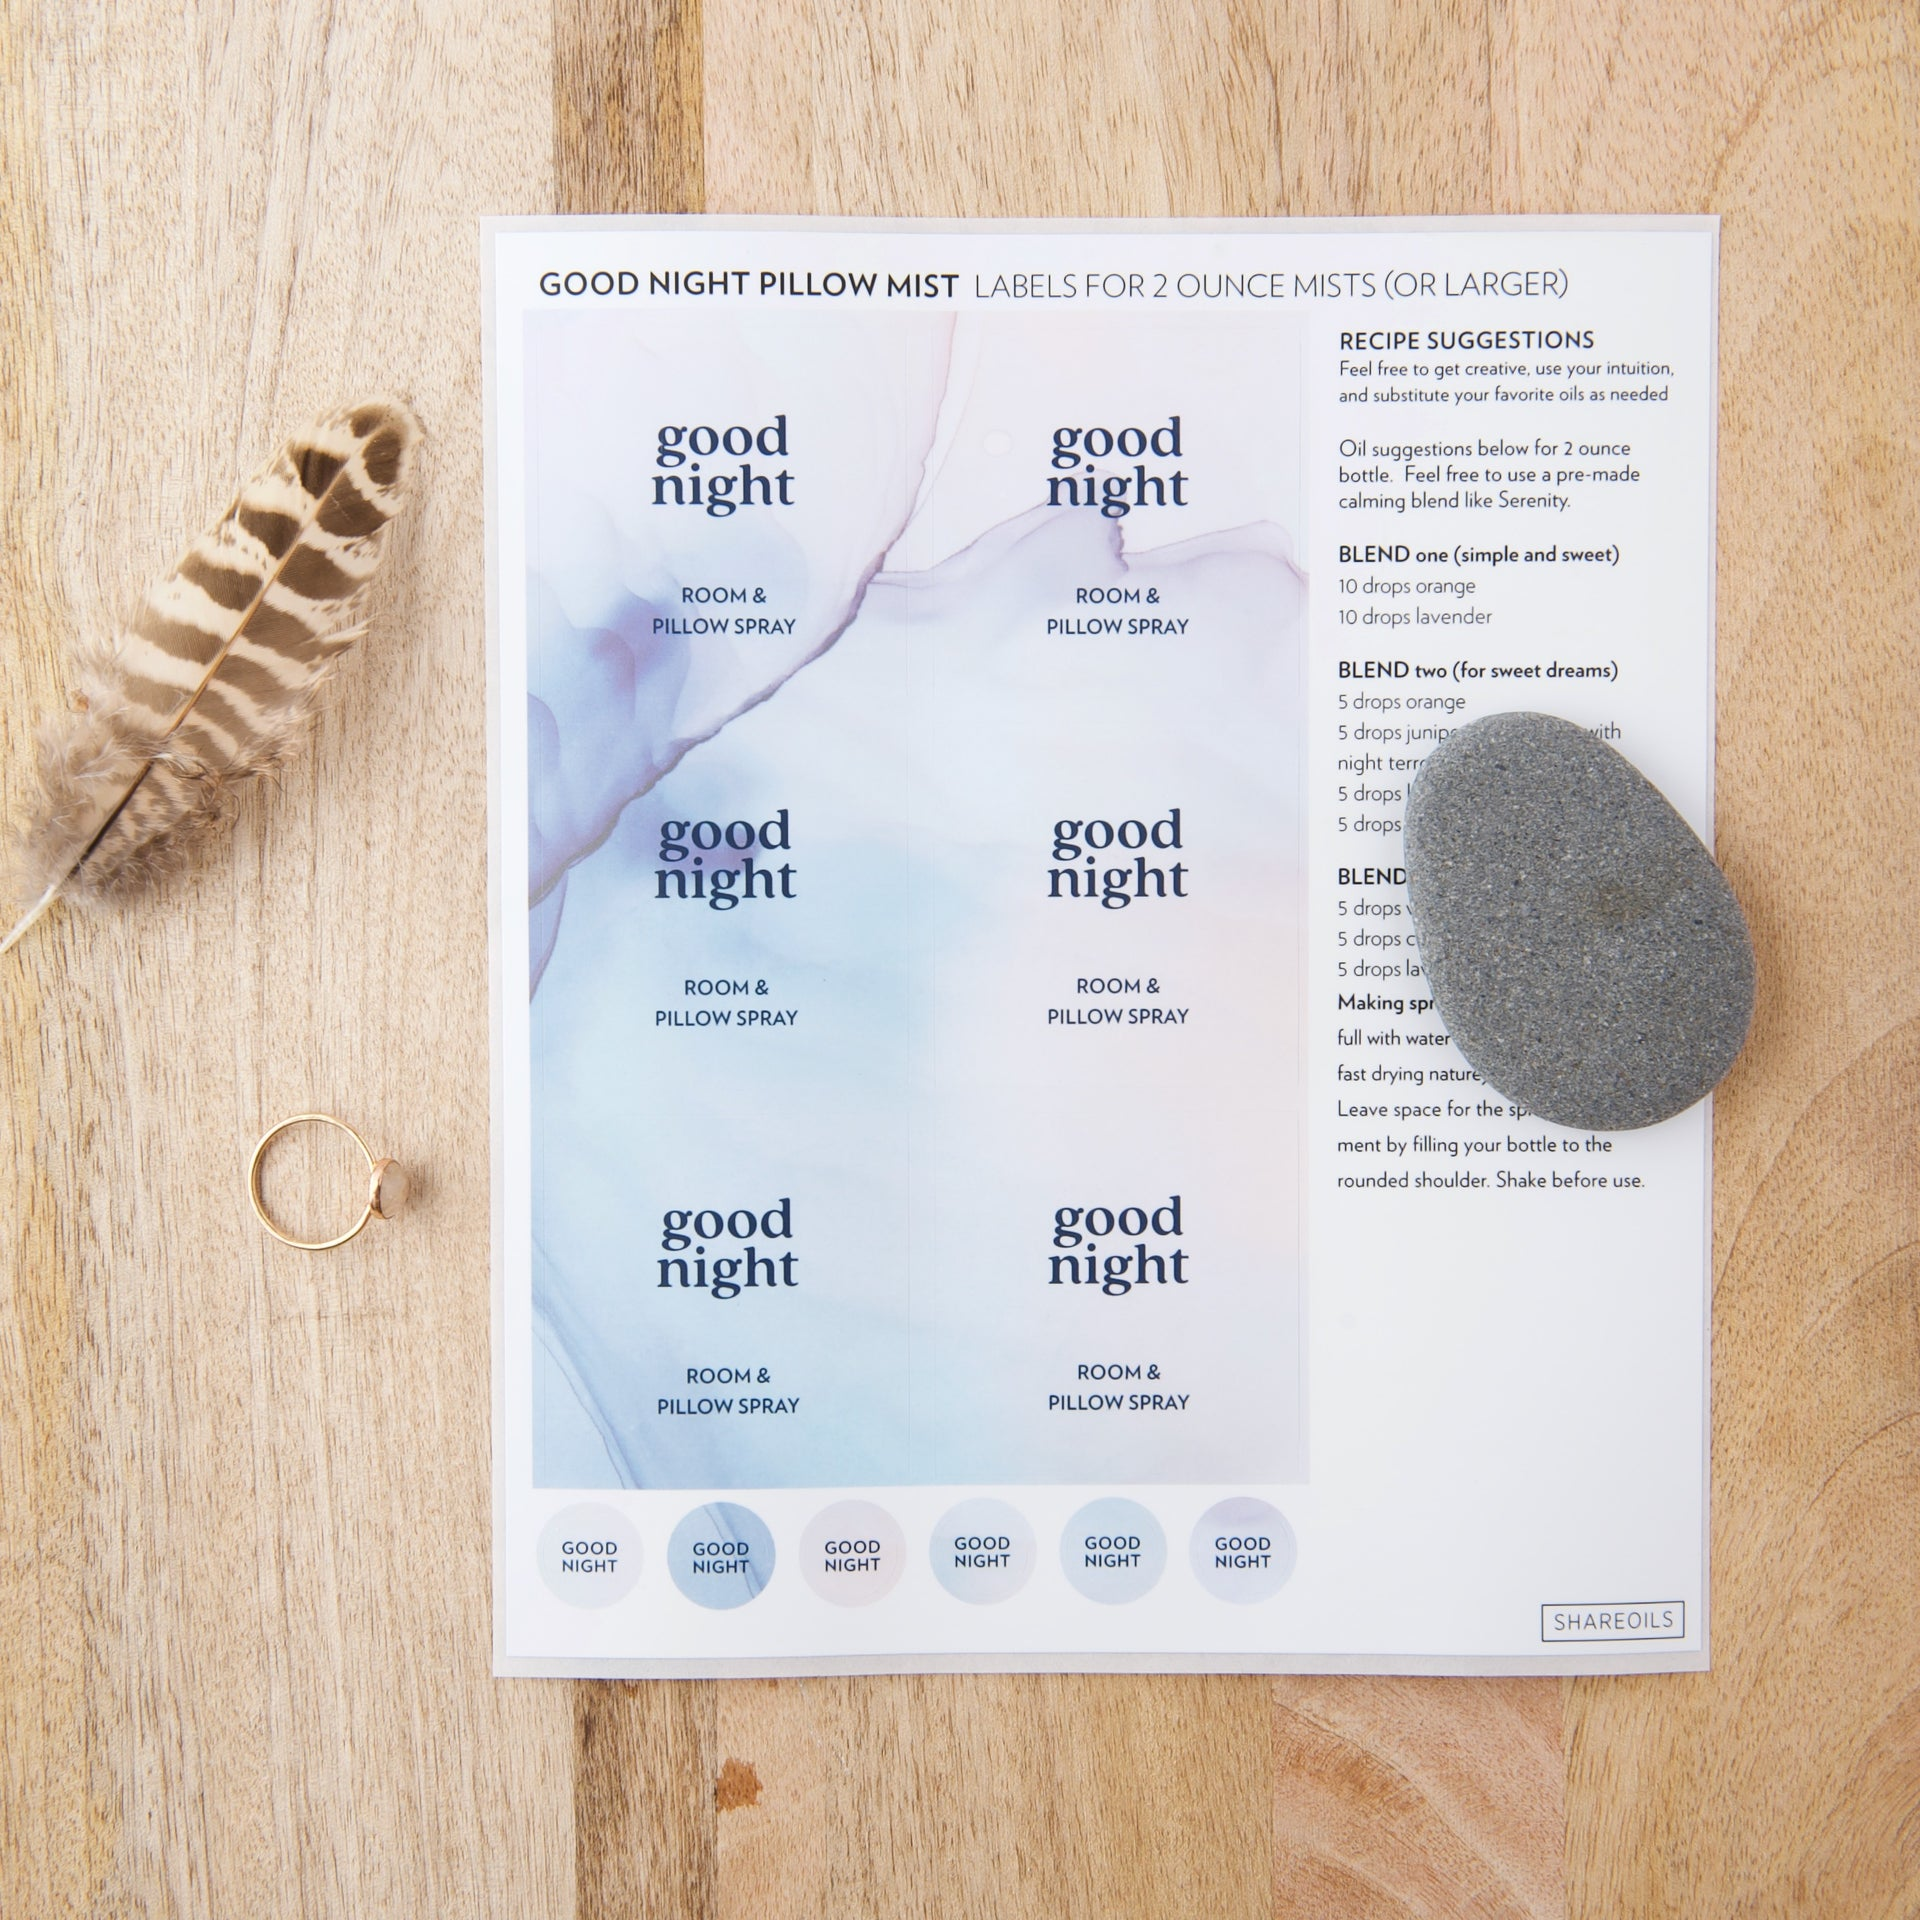 Good Night Pillow Mist Label + Recipes – Sheet of 6 Labels